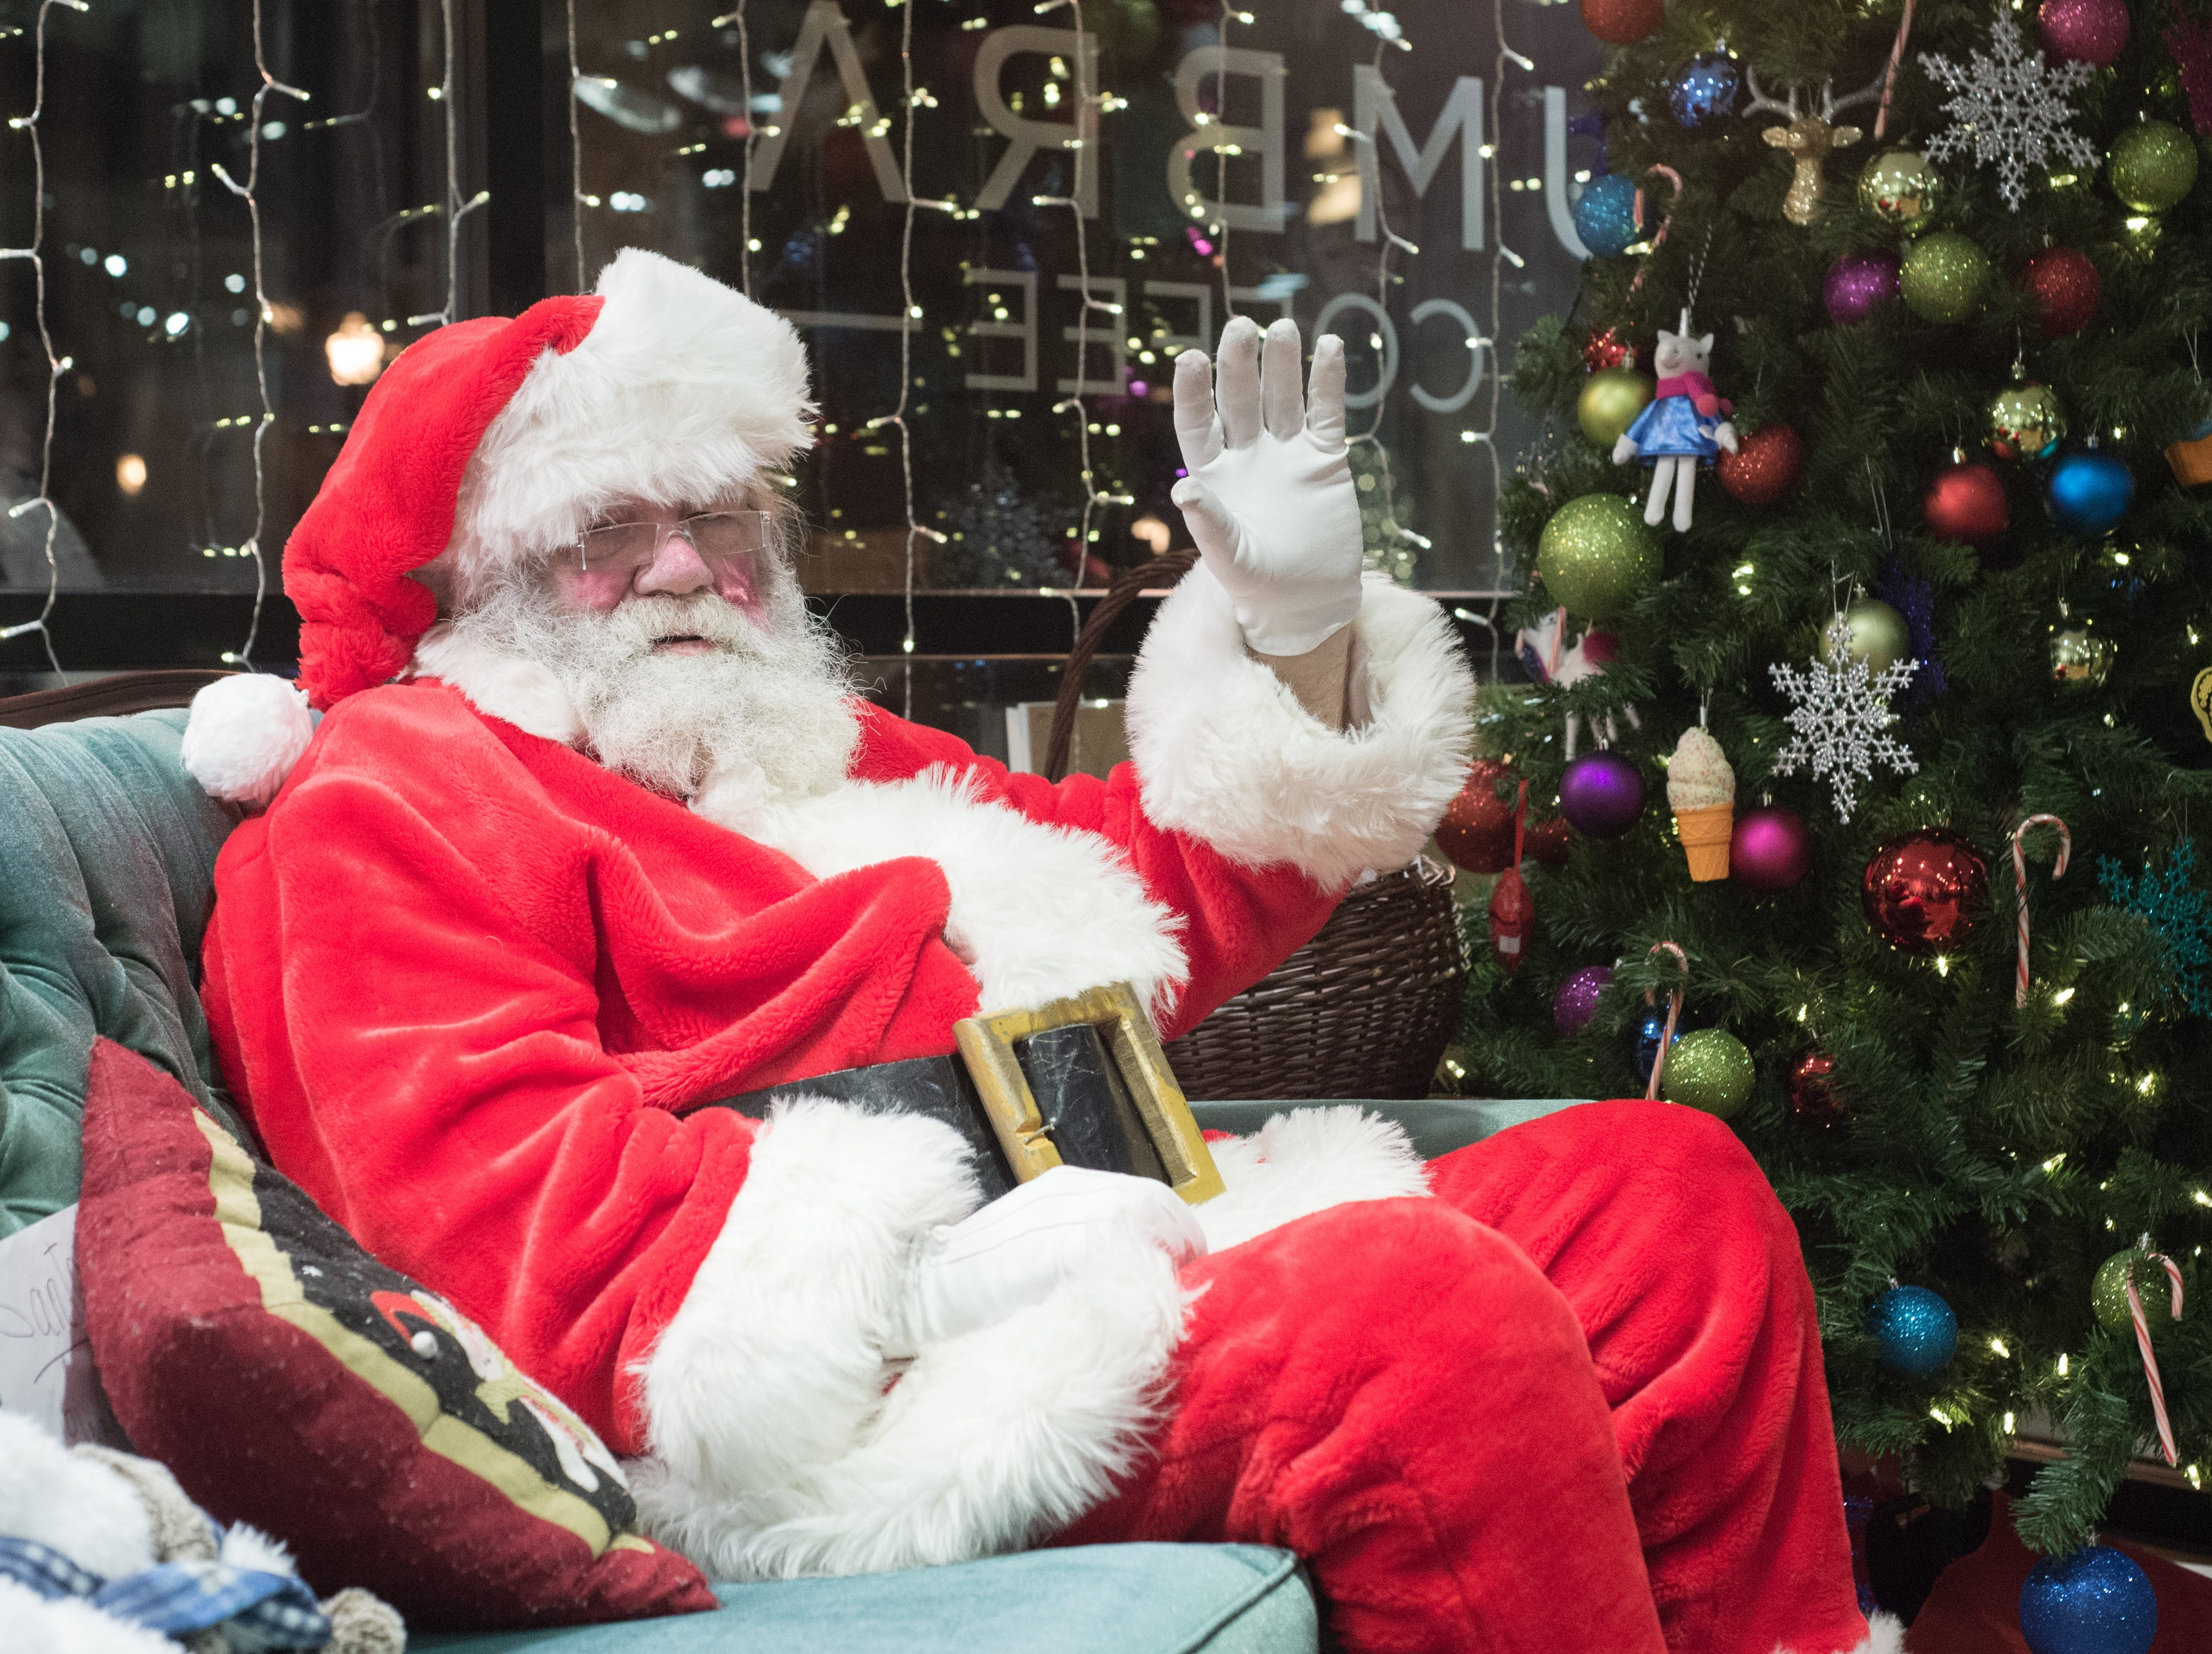 """The Santa on the Square event was presented by Historic Downtown Gallatin at 106 Public Square on Saturday, Dec. 22. """"I want to wish everyone in the world a very Merry Christmas, and a happy and prosperous New Year,"""" Mr. Claus said."""